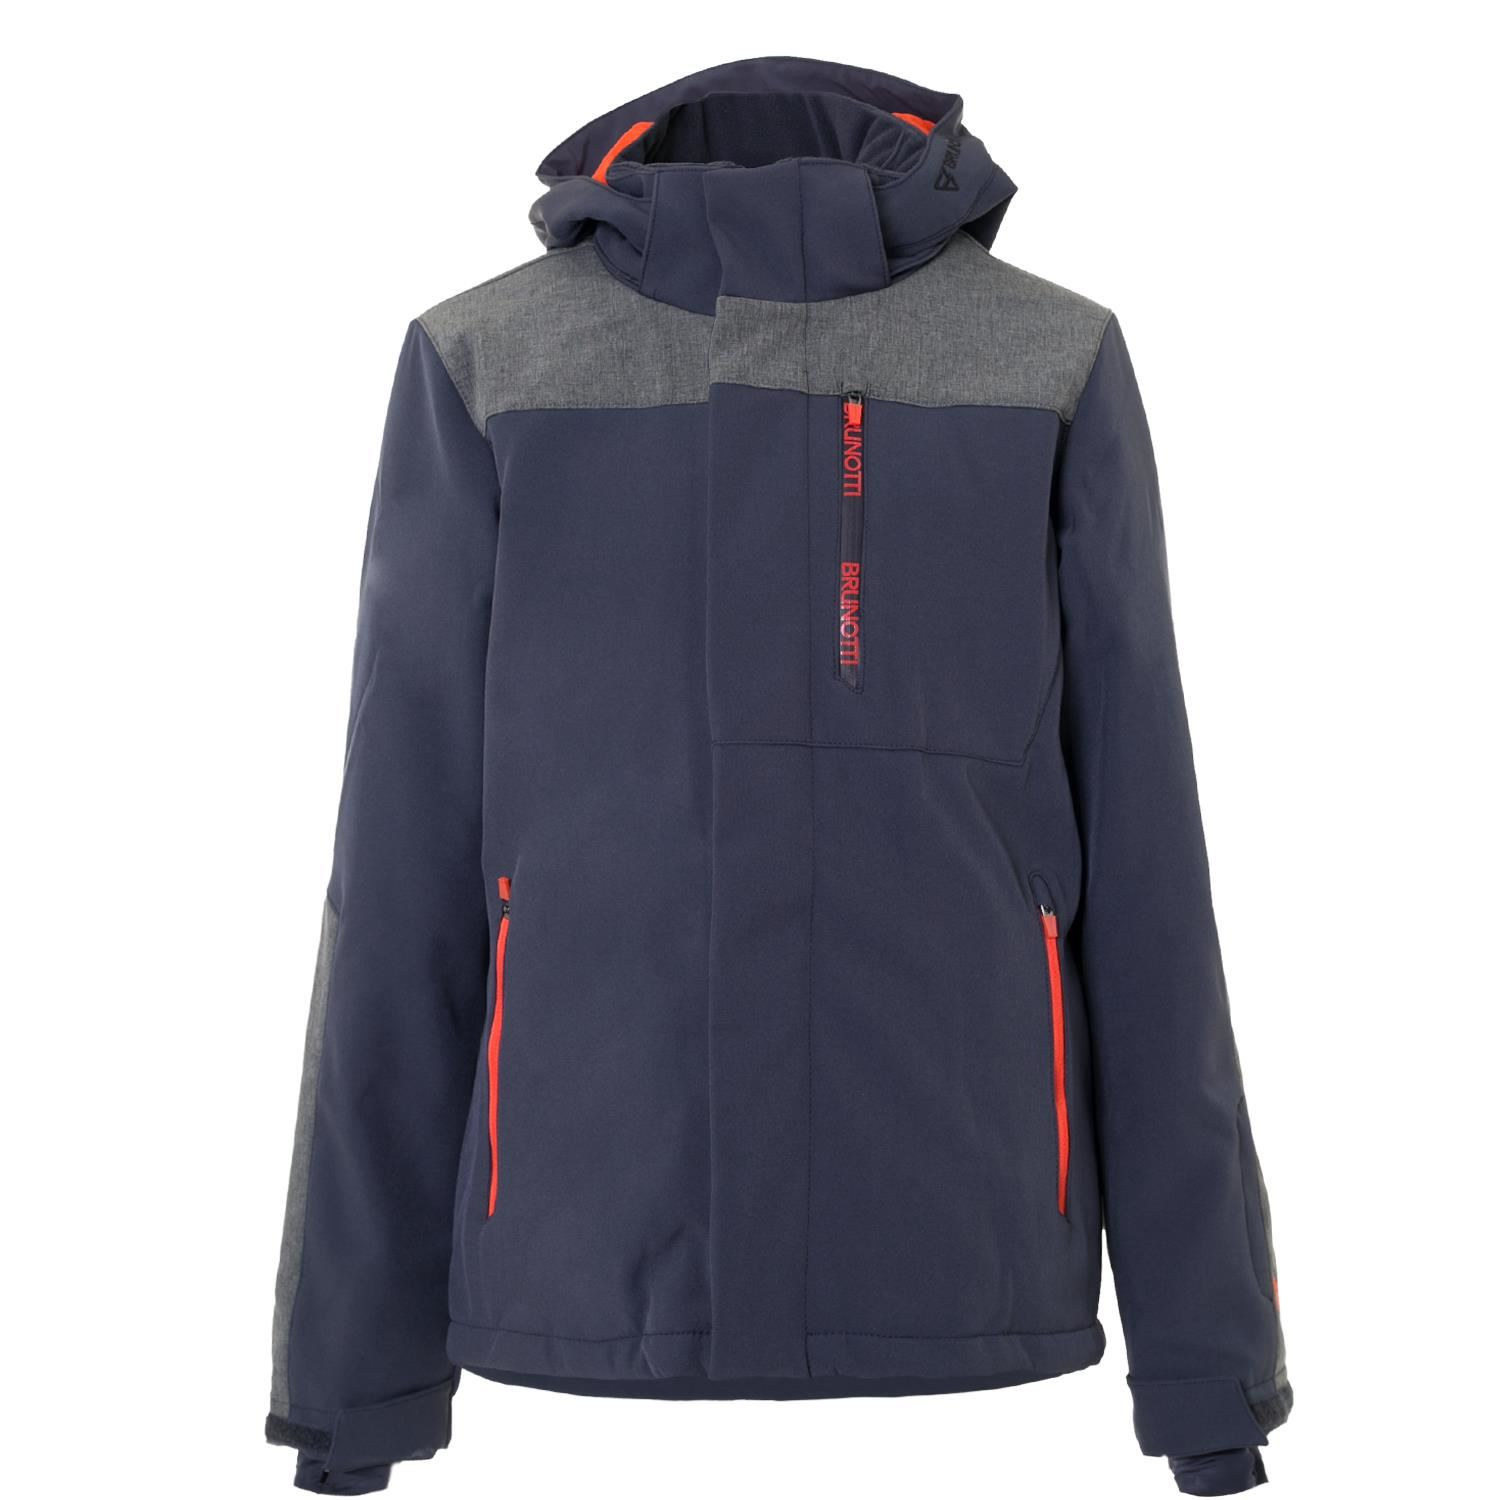 Brunotti Twintip JR Boys Softshell jacket